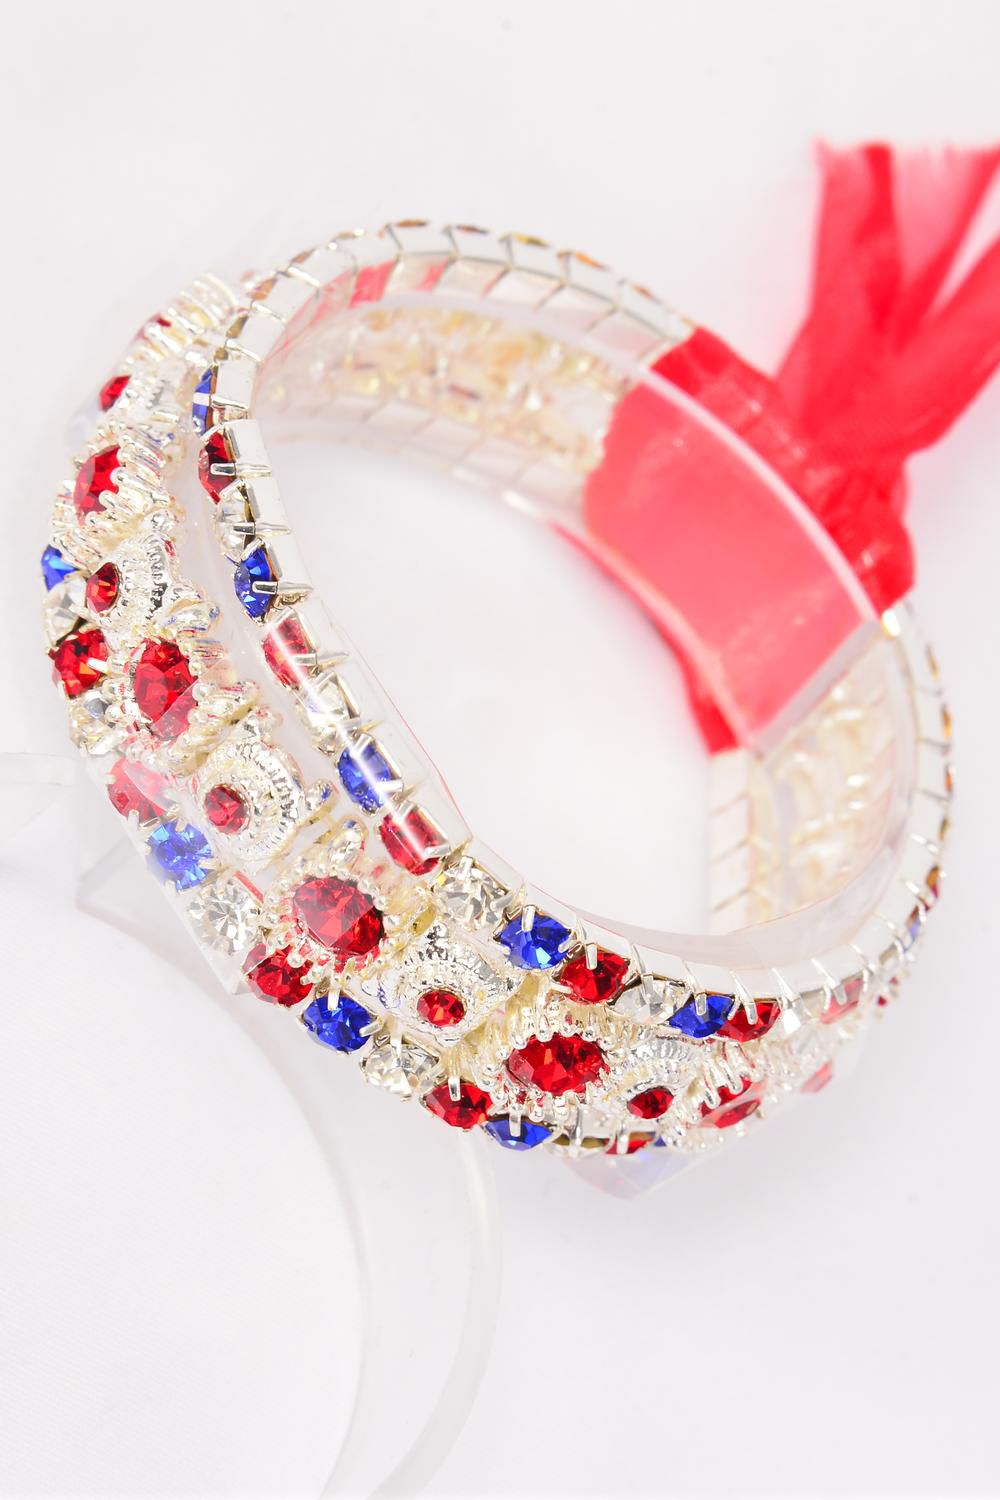 Bracelet Patriotic Flag Color Trio Layered Rhinestone Ribbon Stretch Re White Royal Mix/PC **Stretch** Red Royal Blue Clear Stone Mix,Display Card & OPP bag & UPC Code -